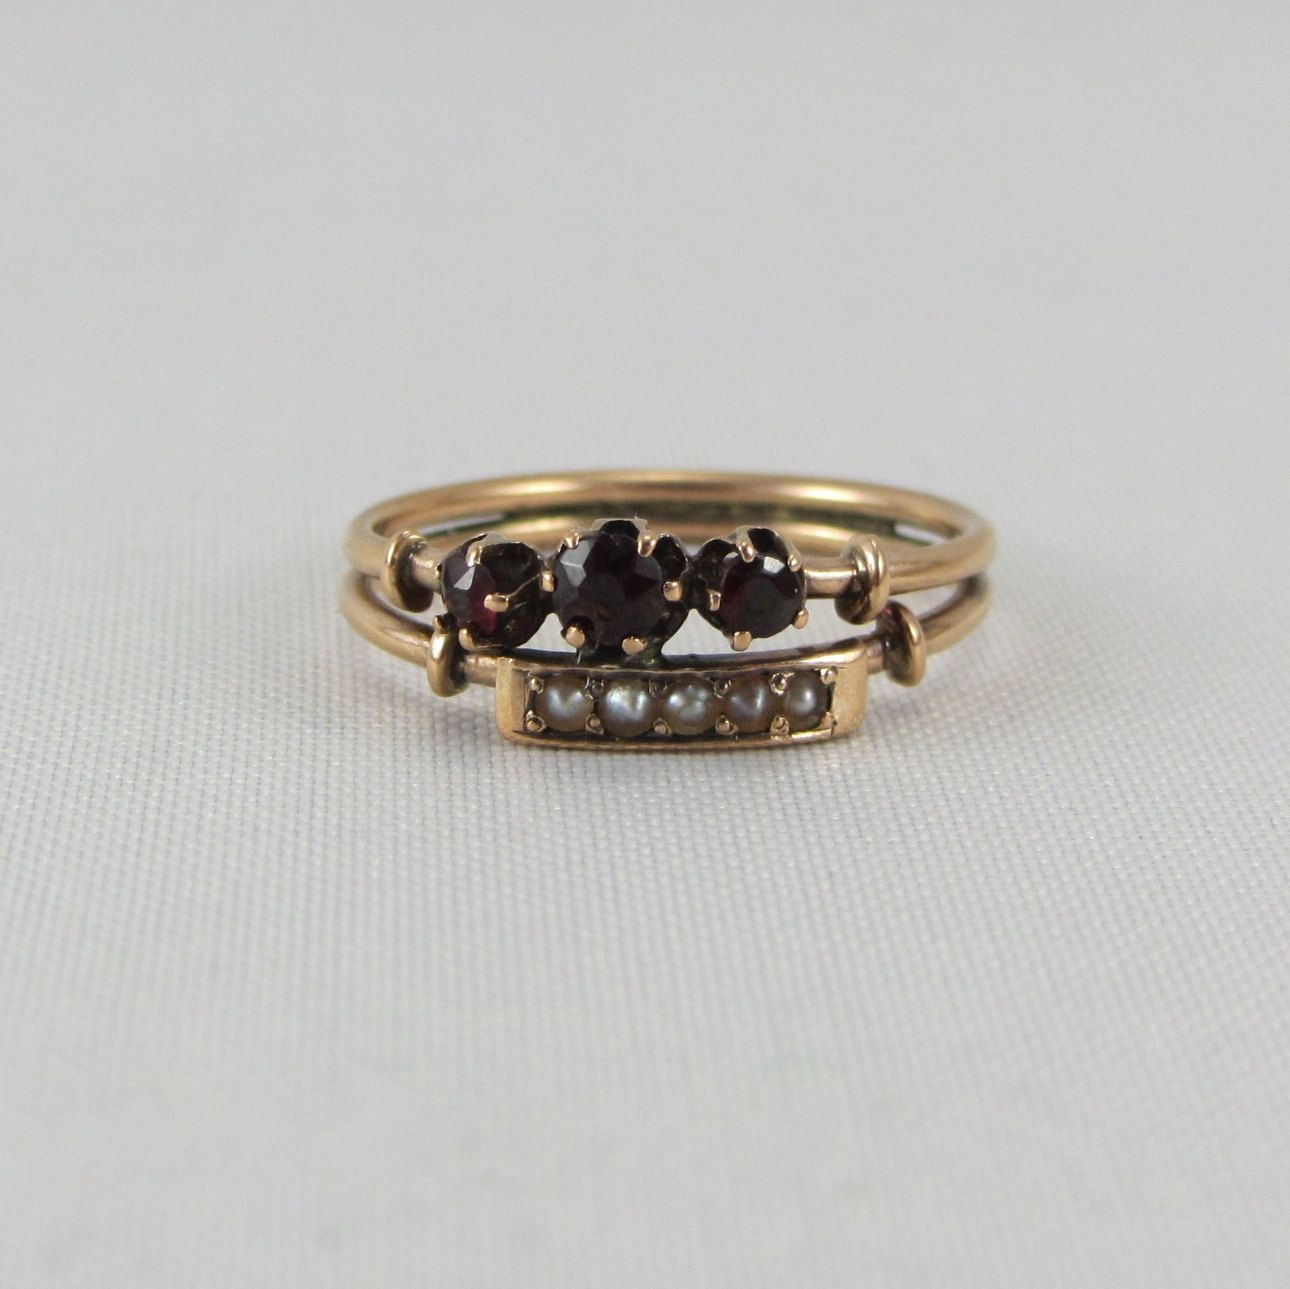 Antique Victorian 14K Rose Gold Seed Pearl and Garnet Ring Size 6 Late 1800s Fine Jewelry by zestfulvintage on Etsy https://www.etsy.com/listing/189171152/antique-victorian-14k-rose-gold-seed